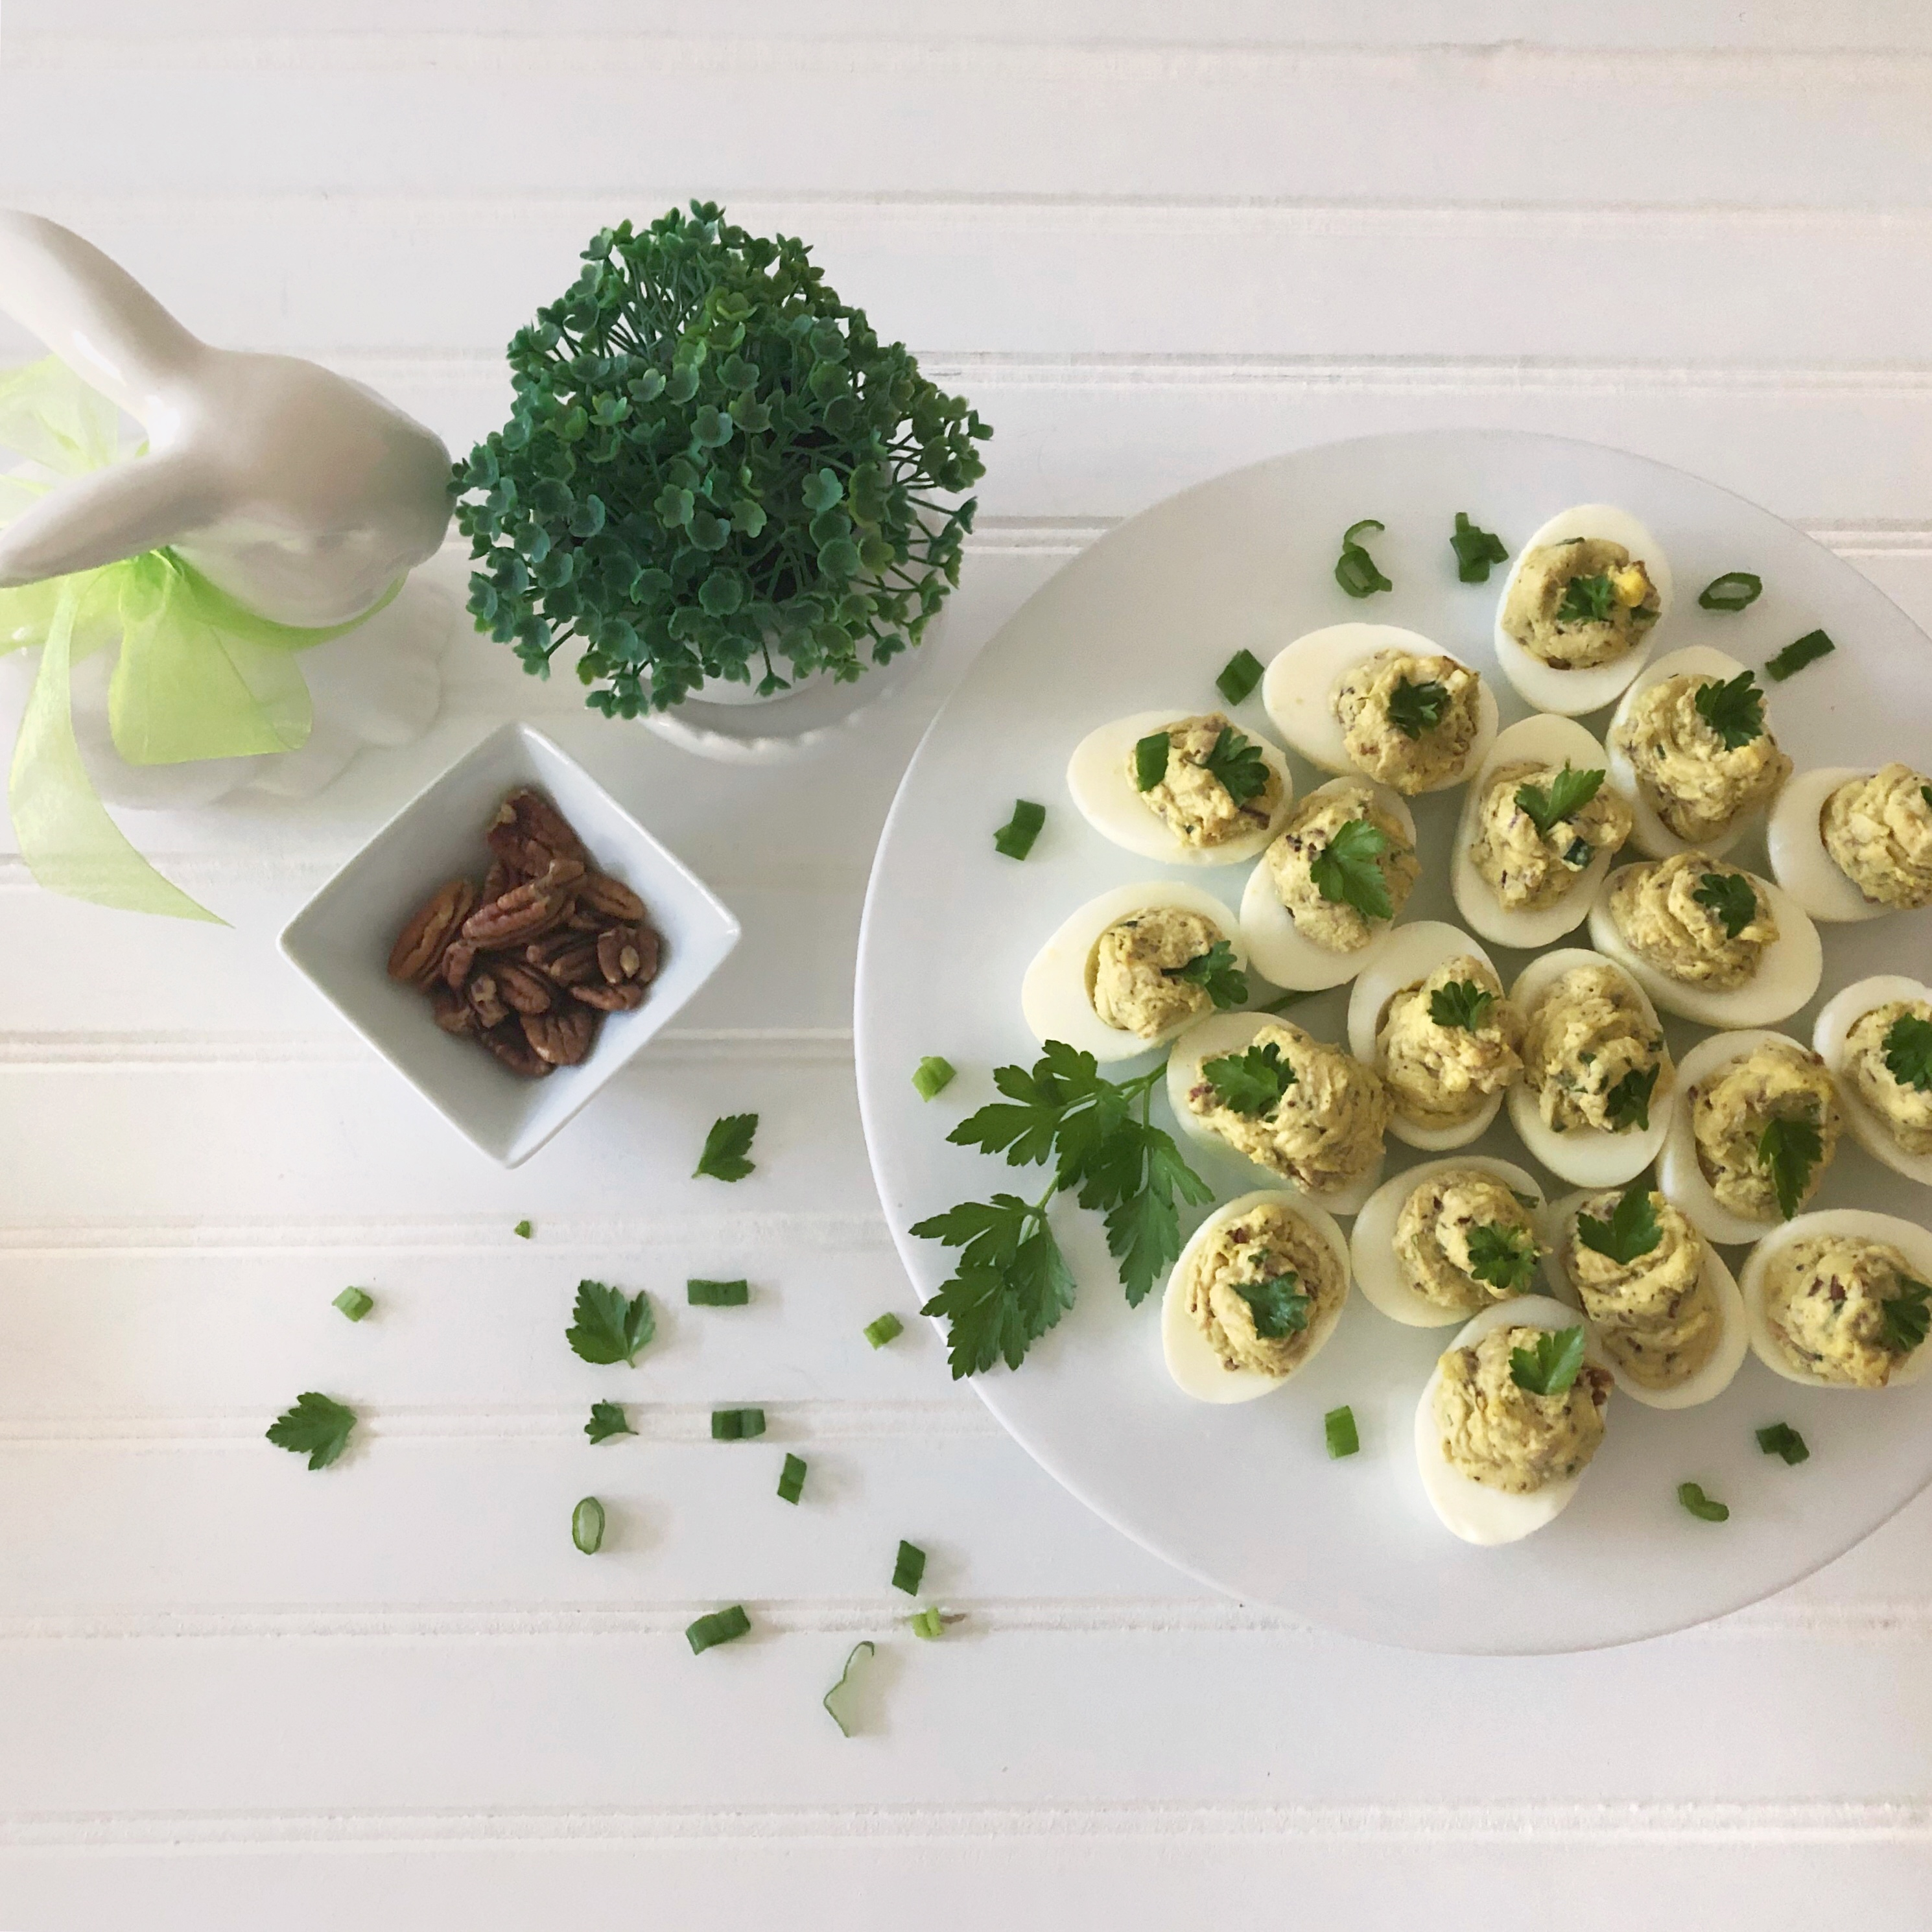 deviled eggs on platter with with pecans and bacon, and bunny